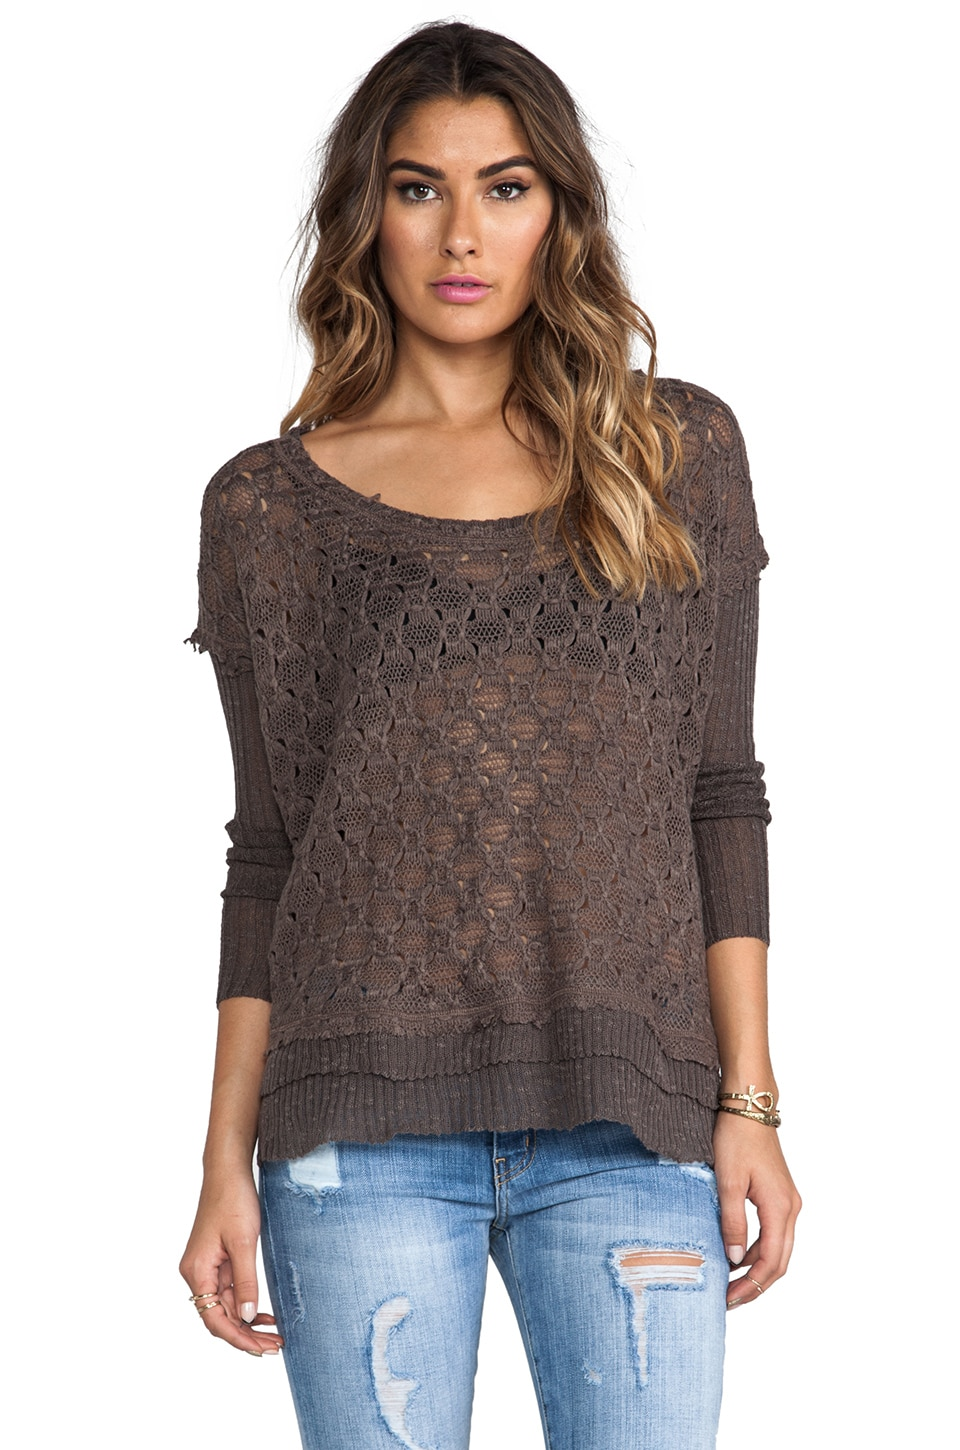 Free People Boxy Textured Sweater in Coal